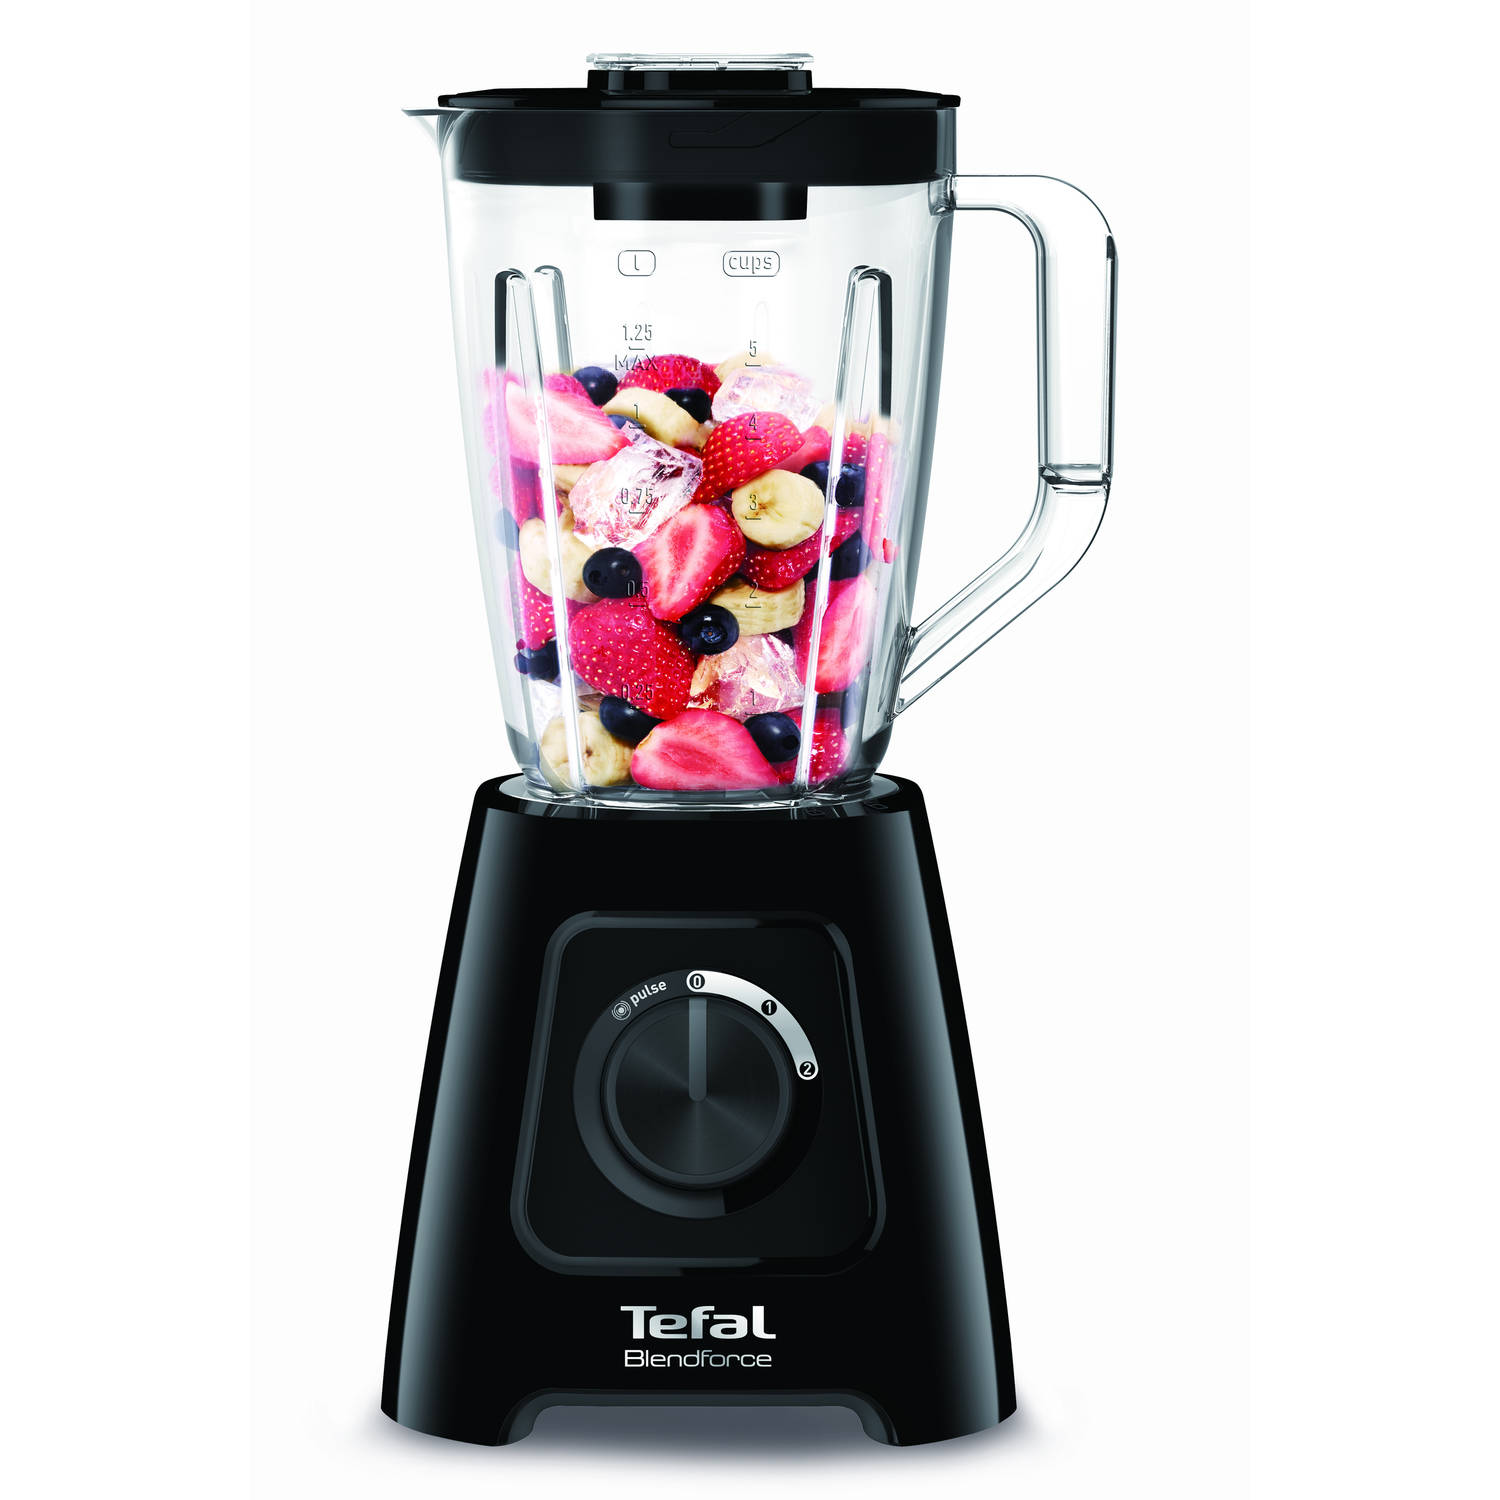 Tefal blender Blendforce II BL4208